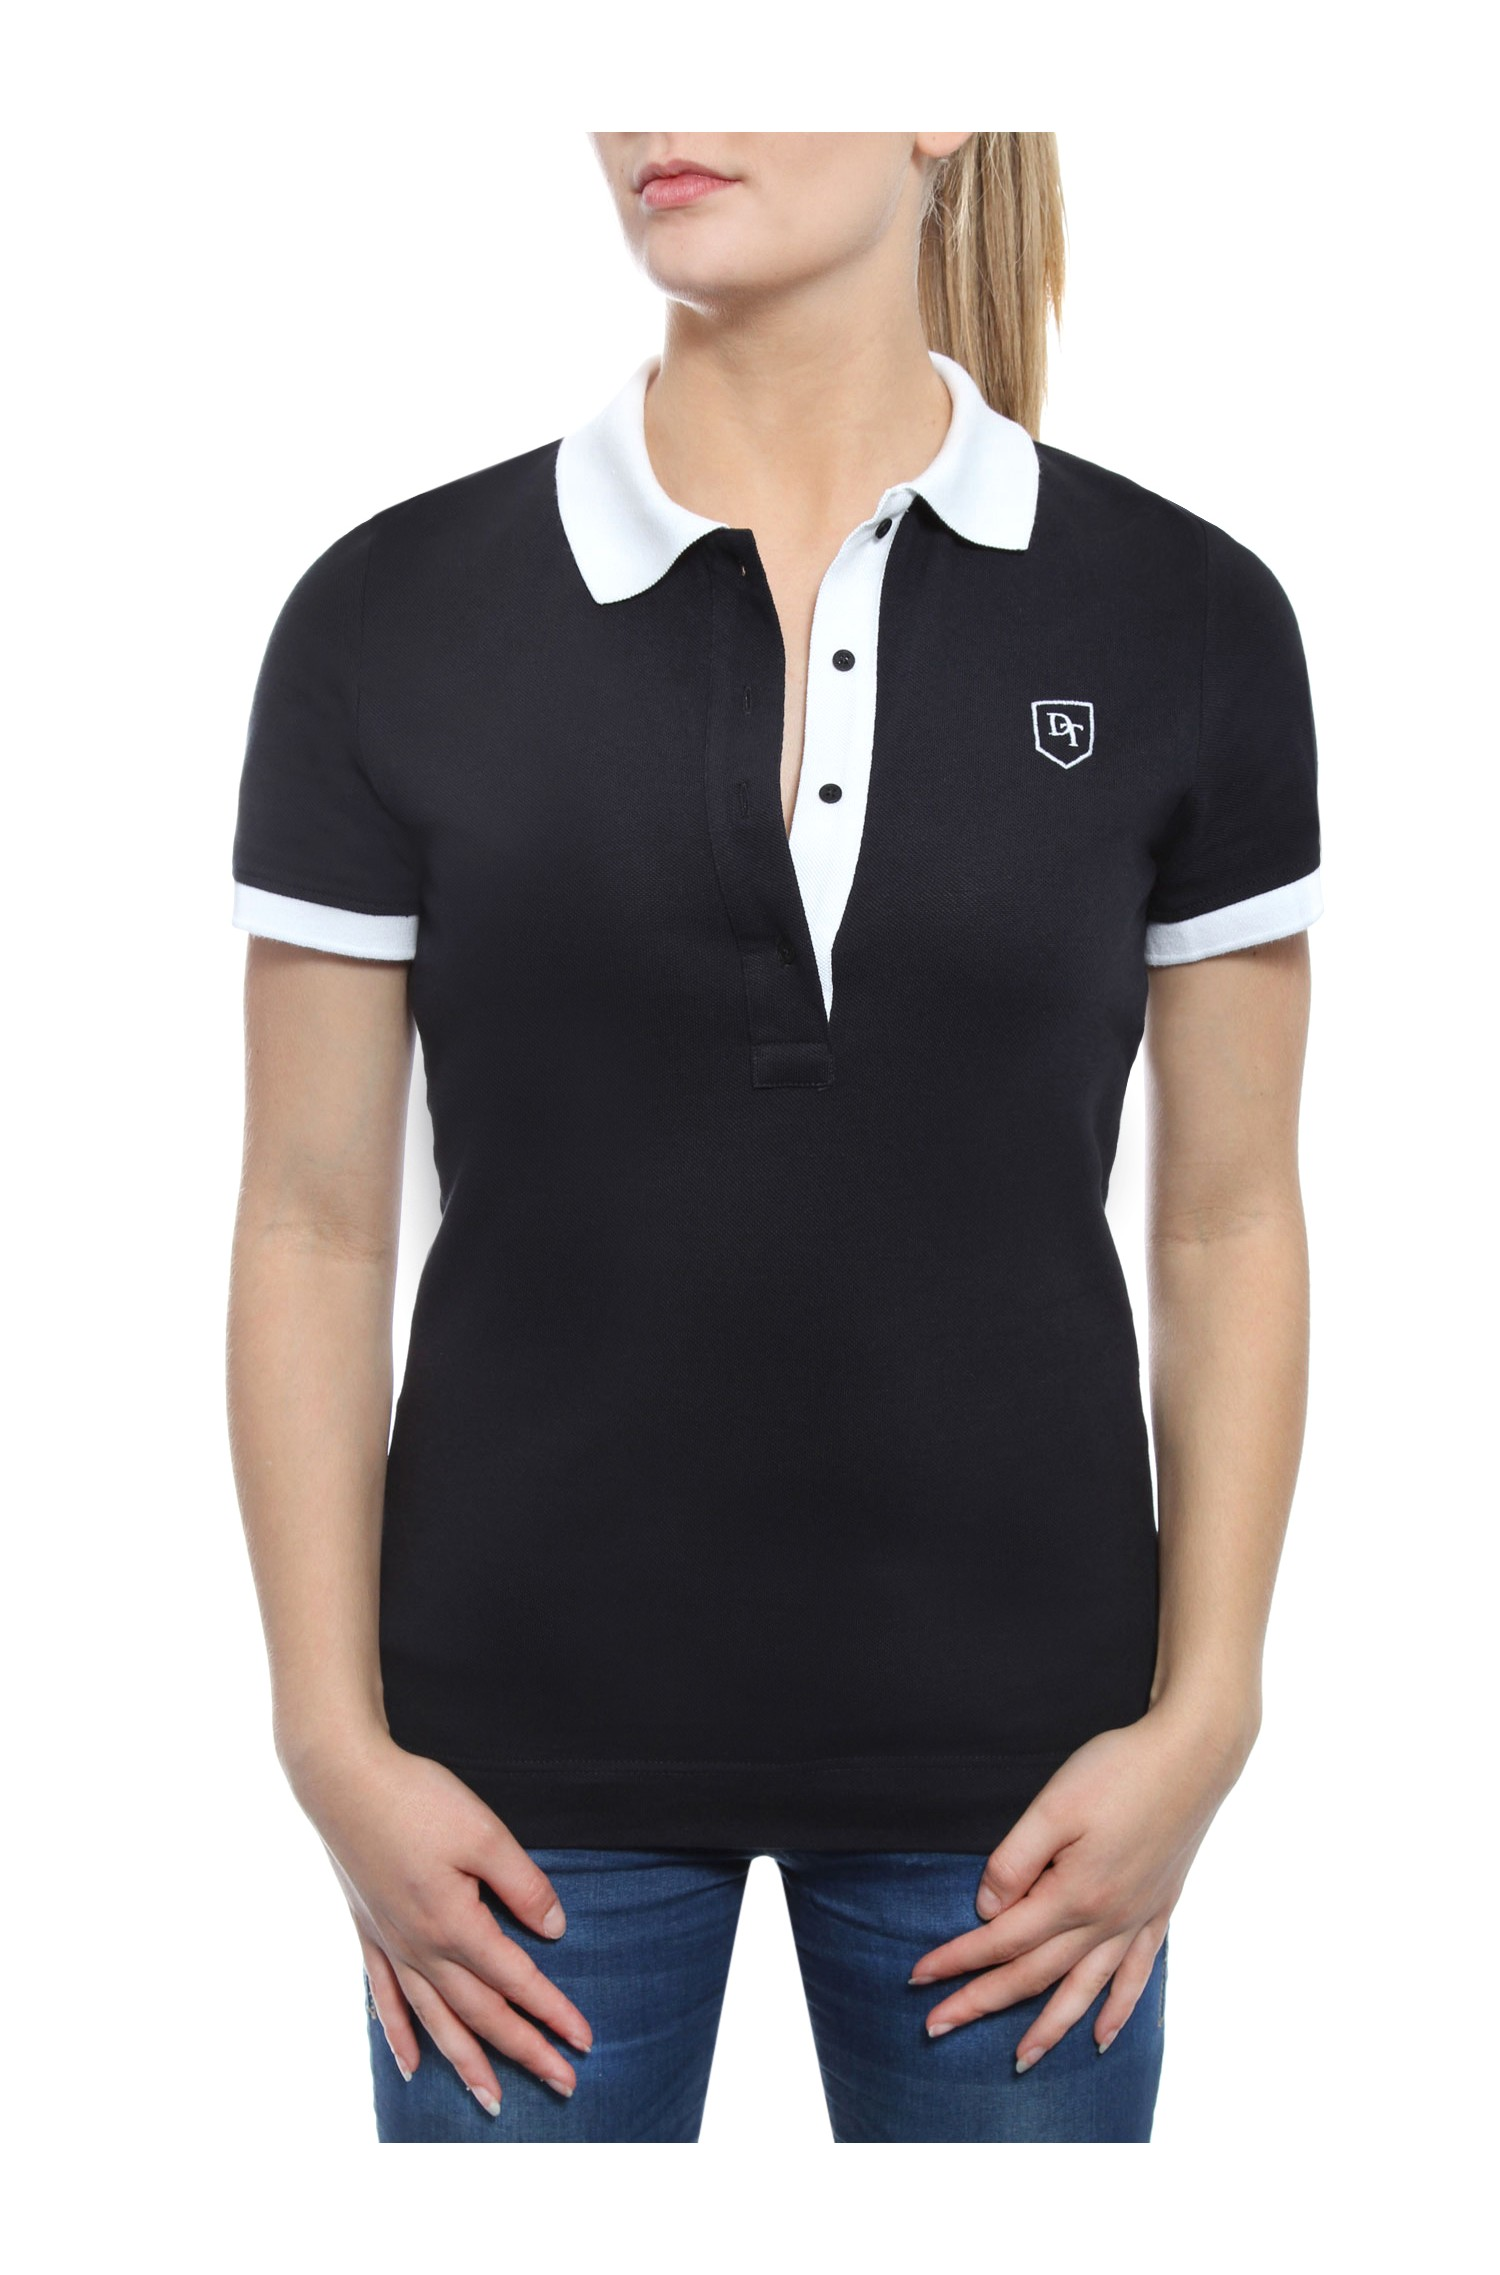 dc8a69966864 POLO SHORT SLEEVE TWO-COLORED NAVY BLUE AND WHITE IN PRICKED JERSEY COTTON  BRUSHED